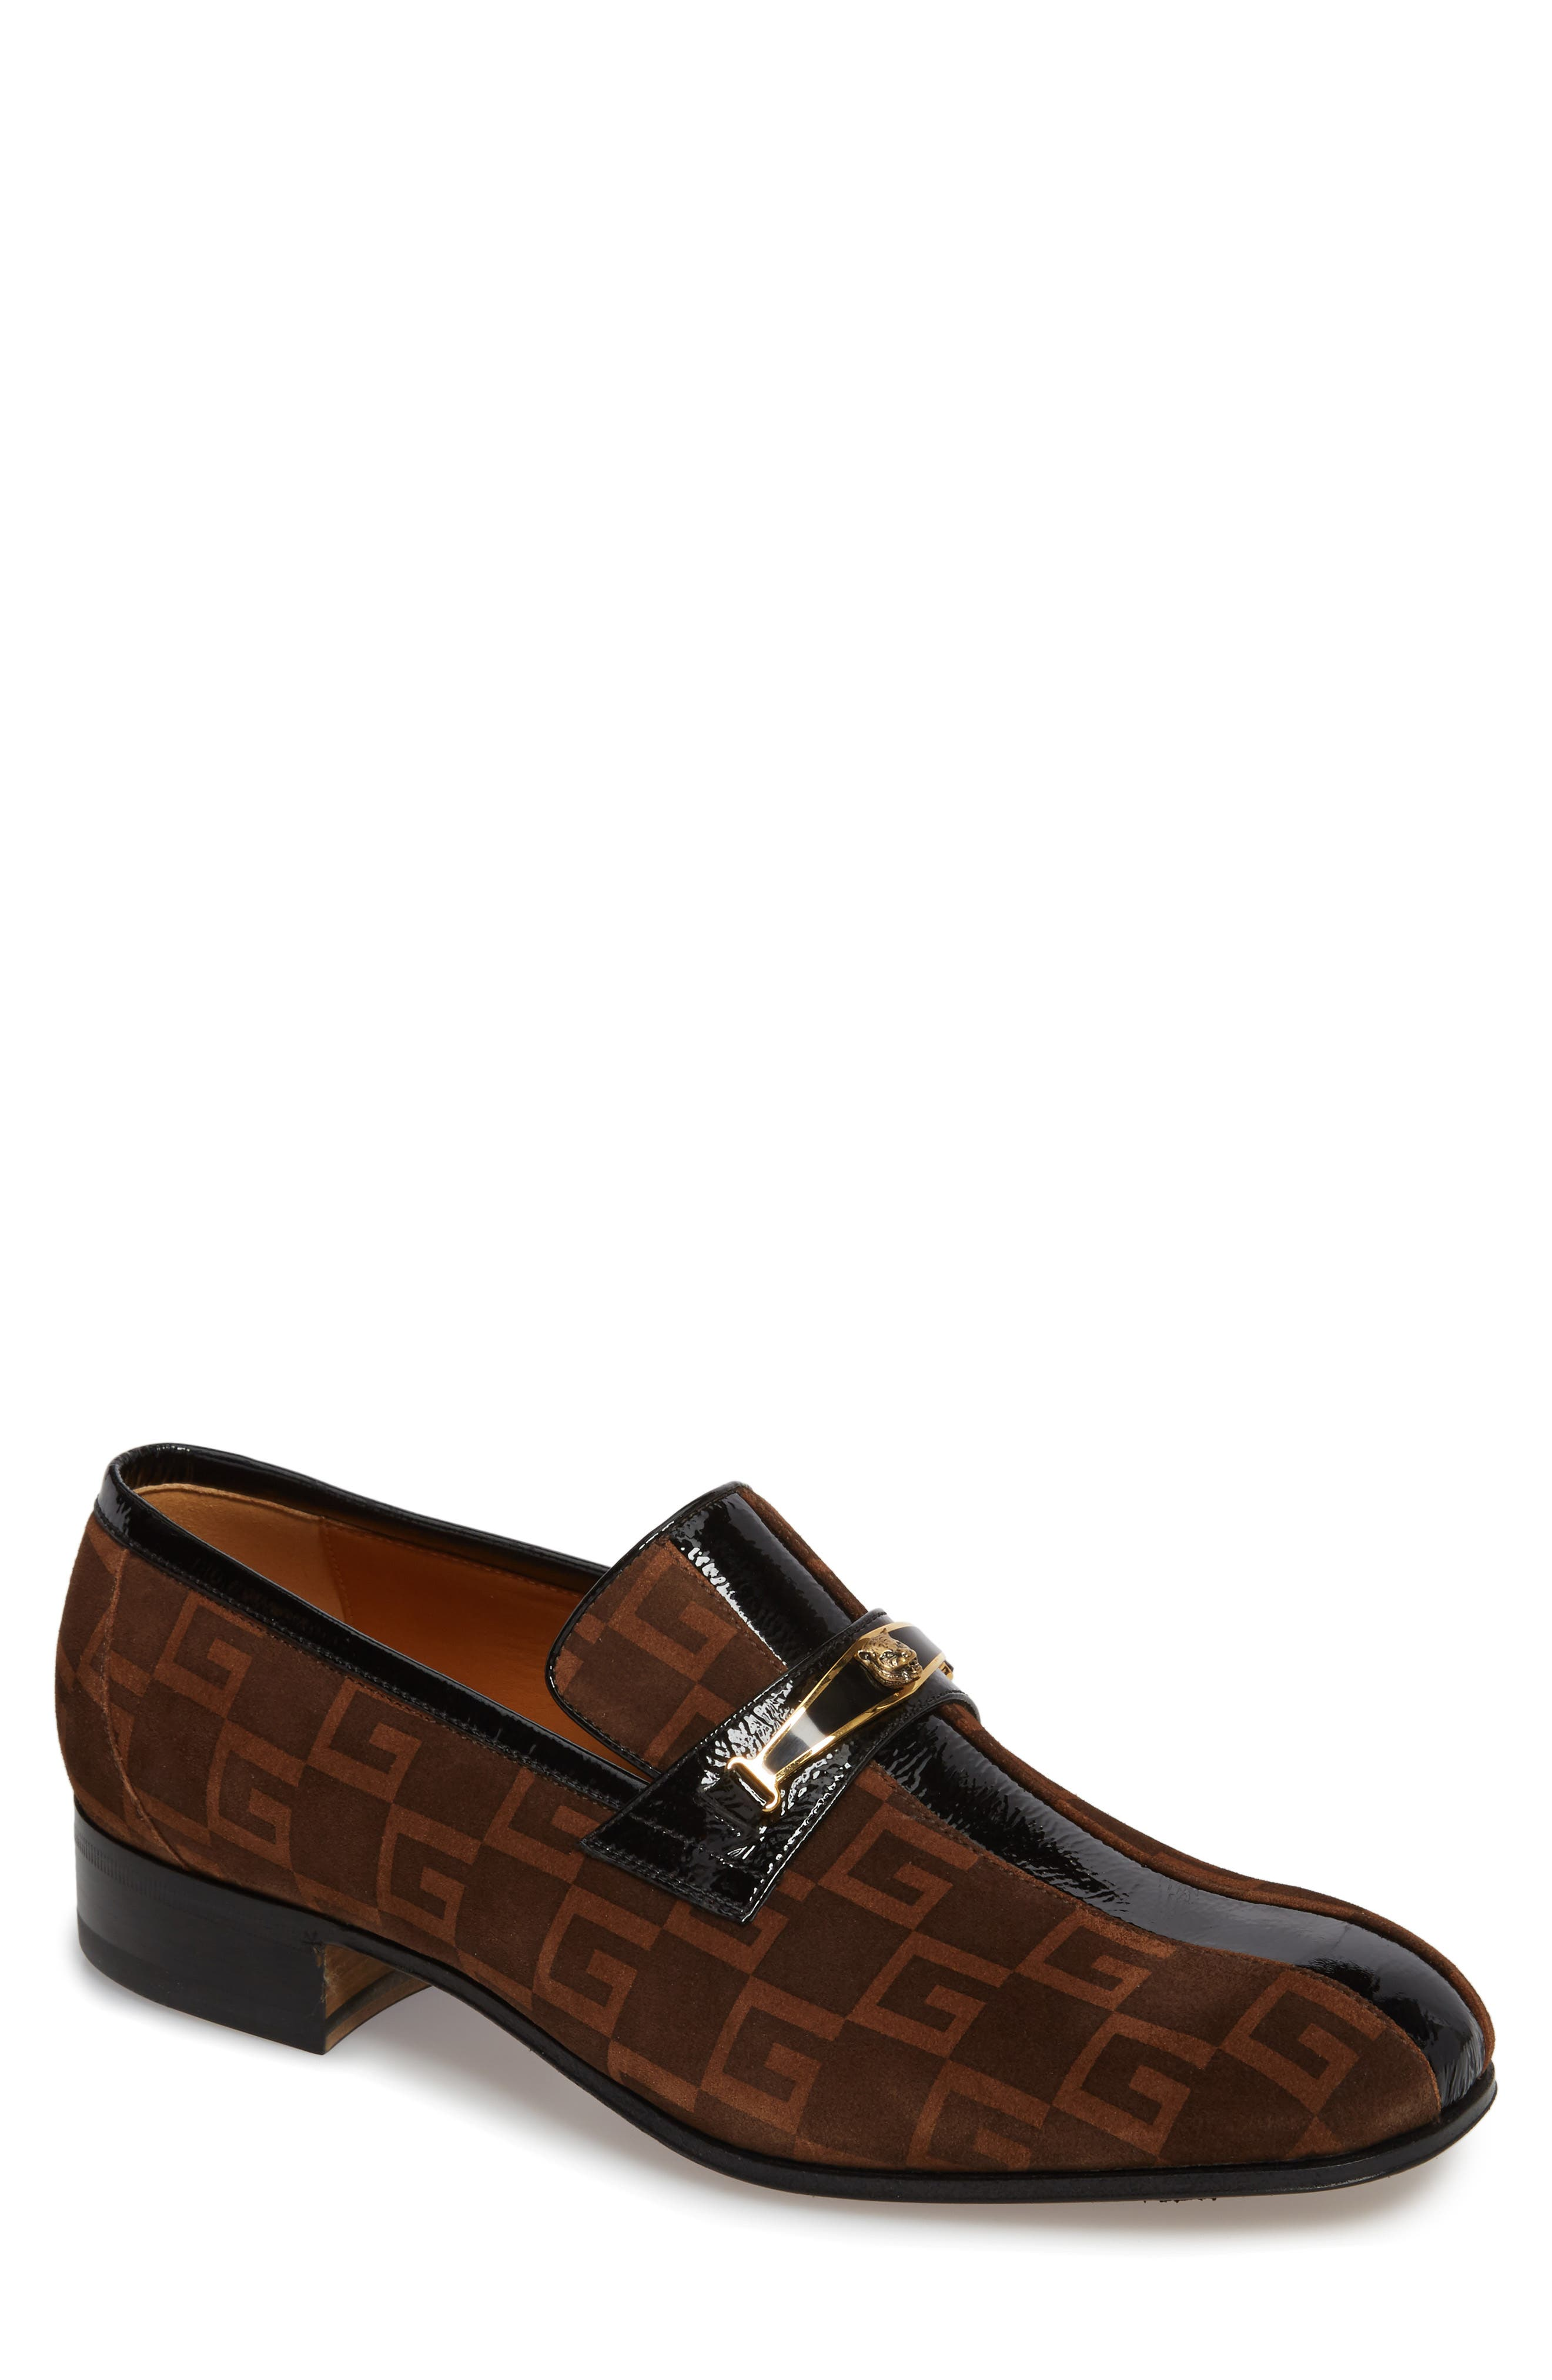 Square-G Loafer,                         Main,                         color, NERO SIGARO